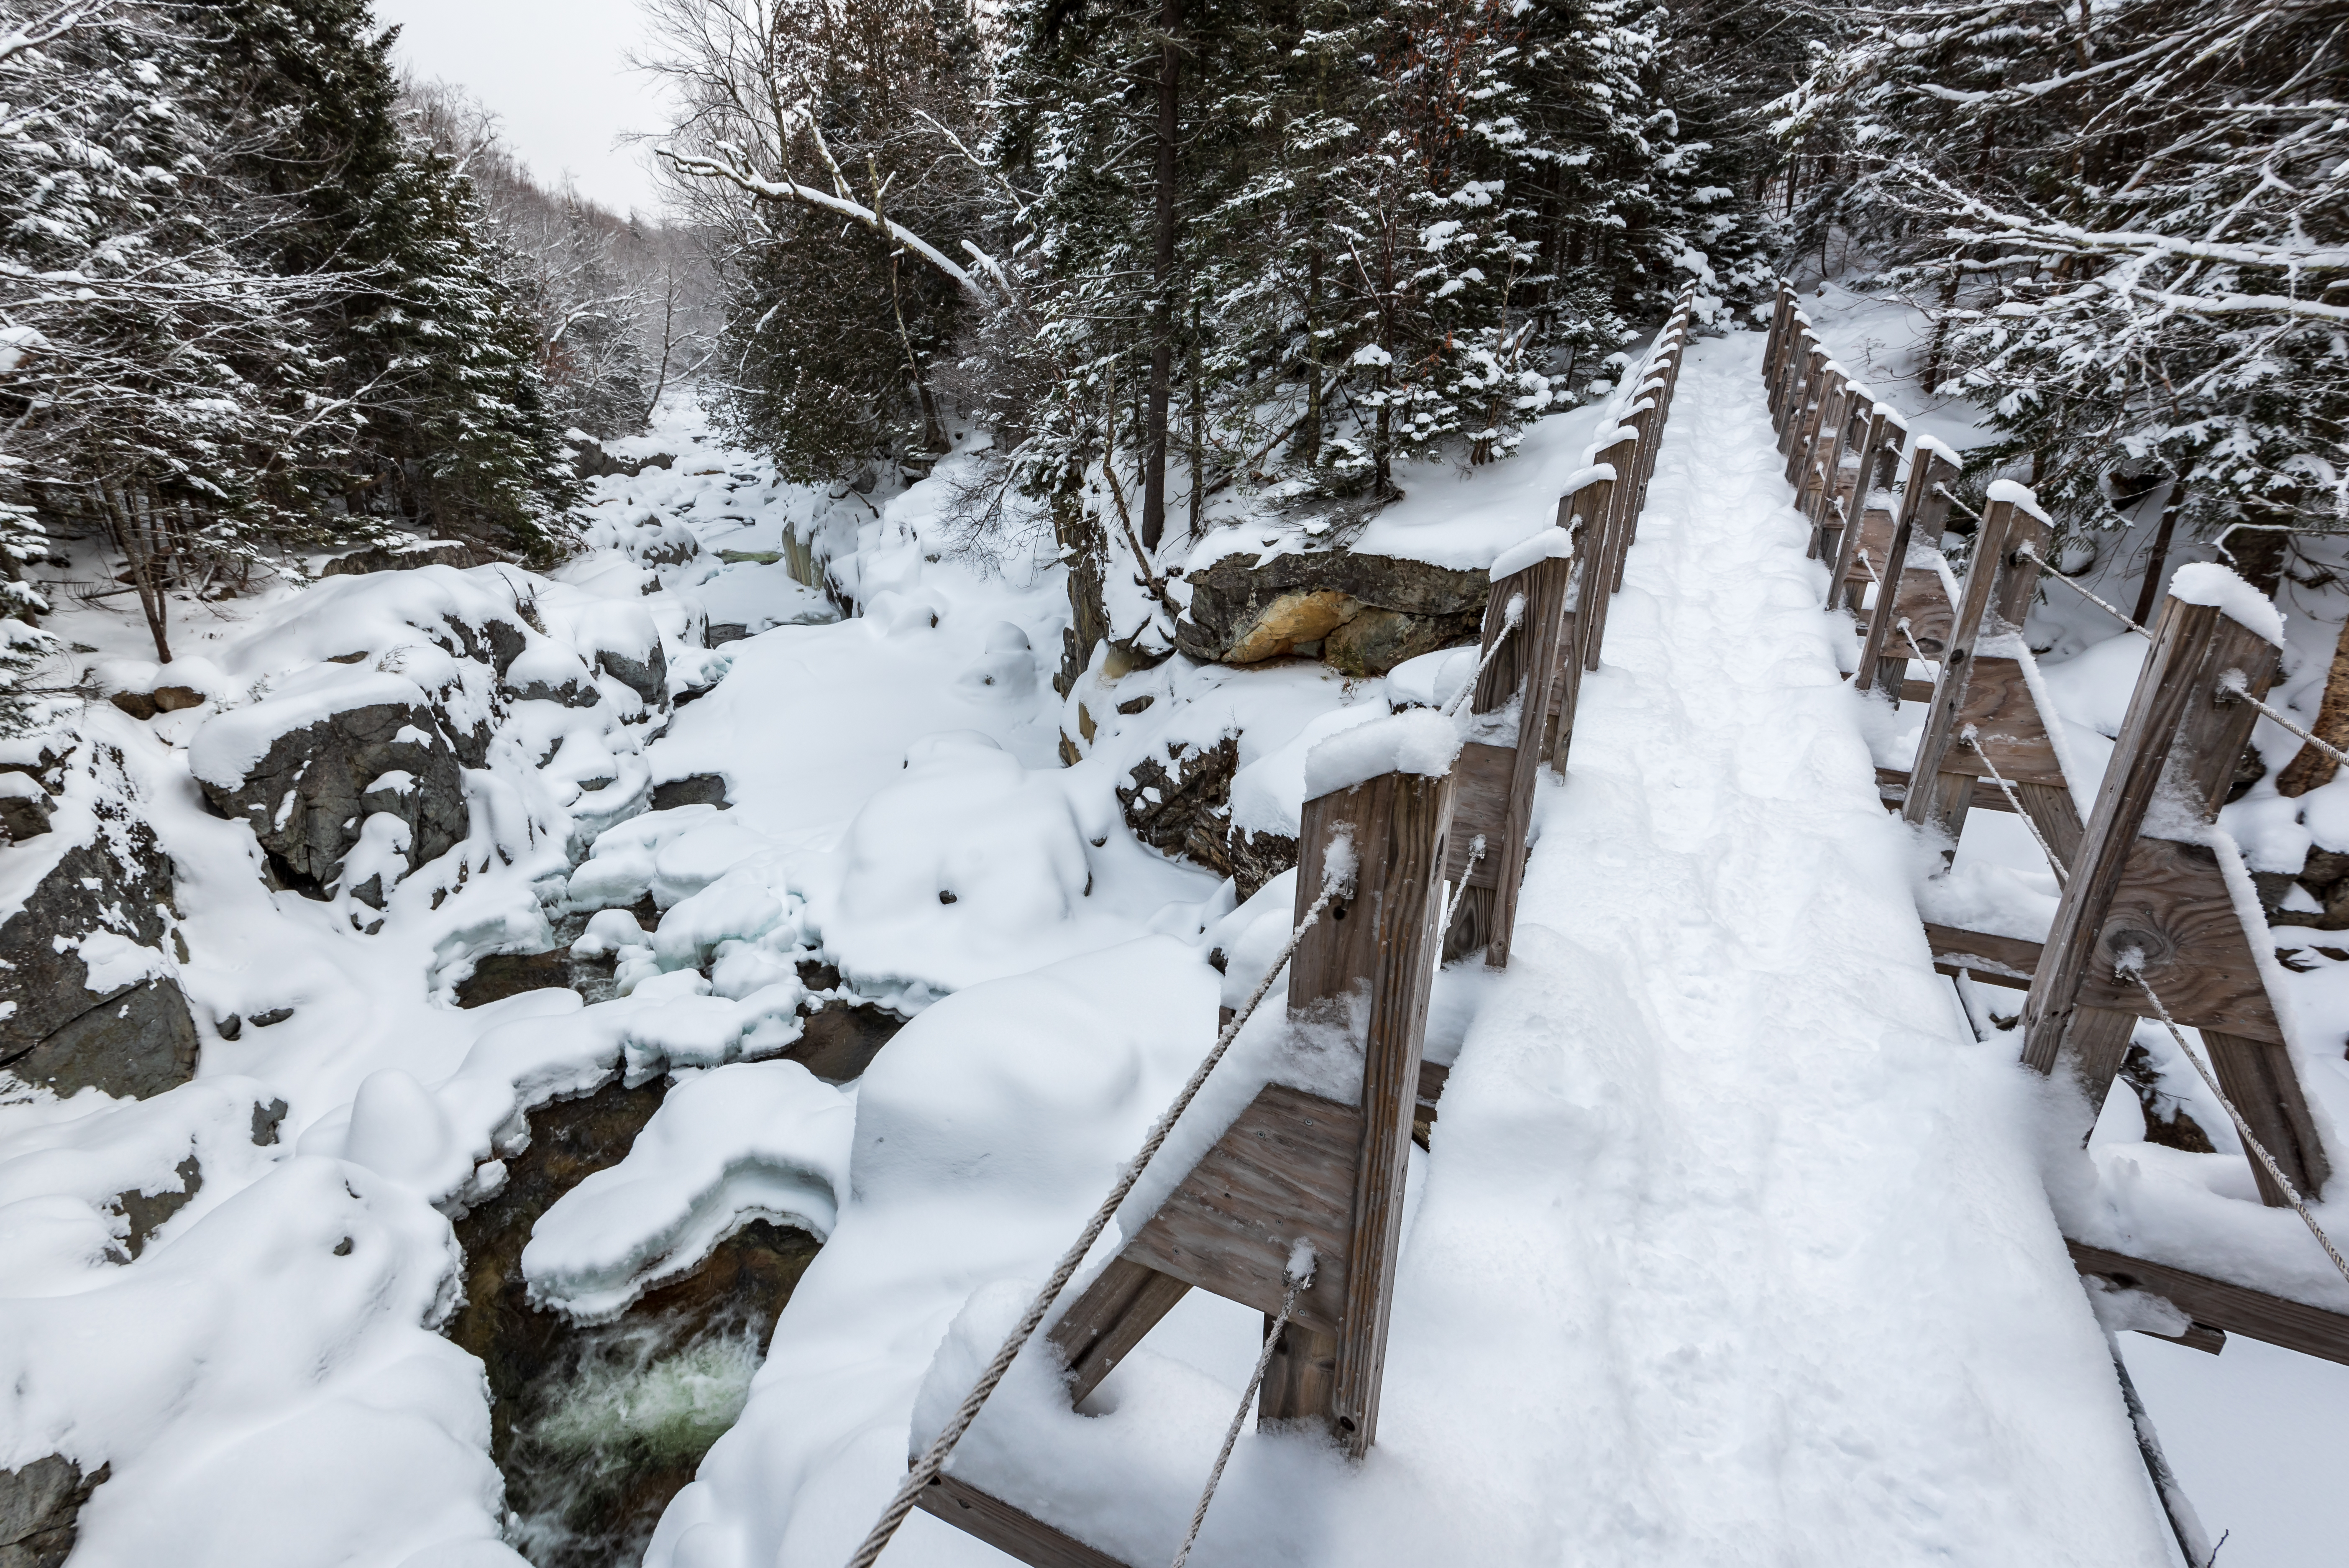 A snowy bridge over an icy river